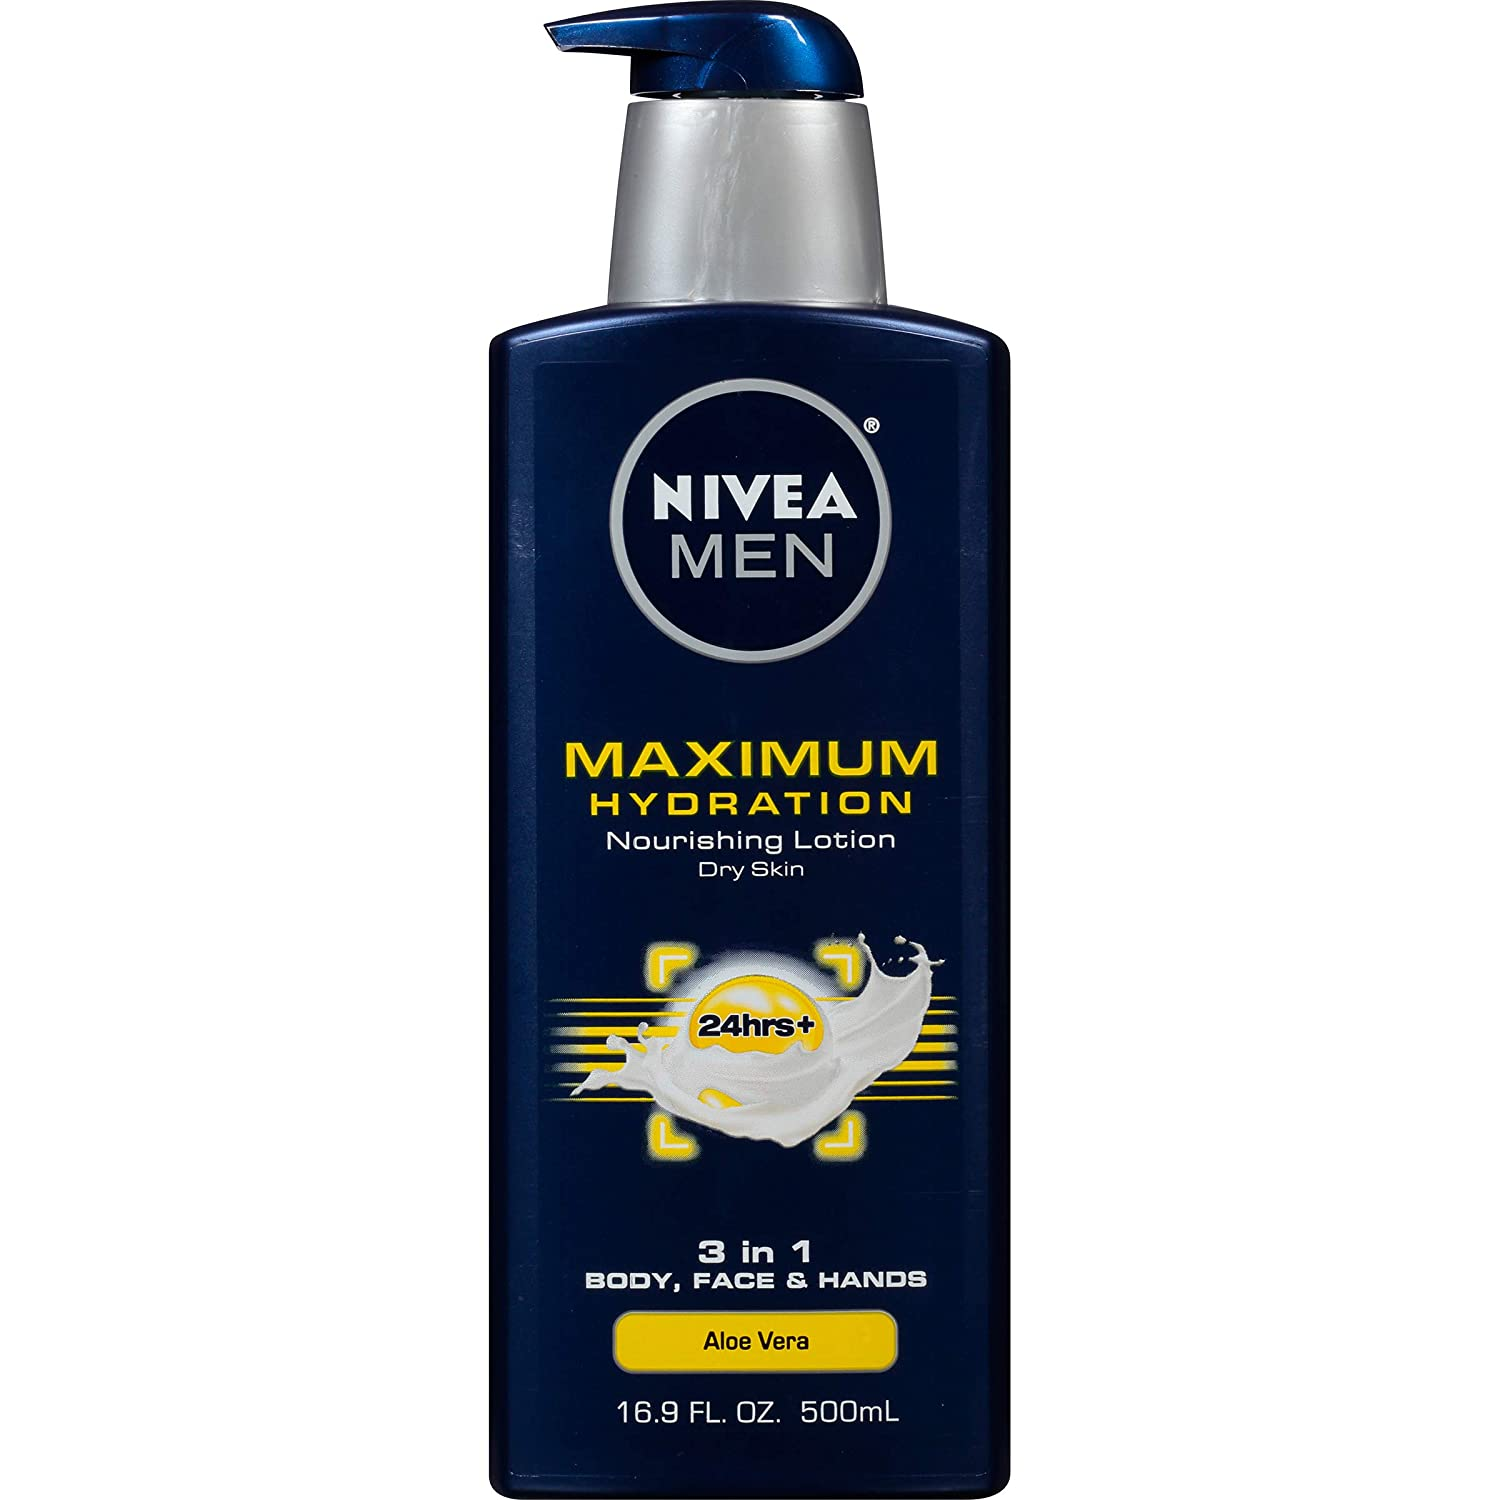 NIVEA Men Maximum Hydration 3-in-1 Nourishing Lotion - Body, Face, Hands - 16.9 oz. Pump Bottle